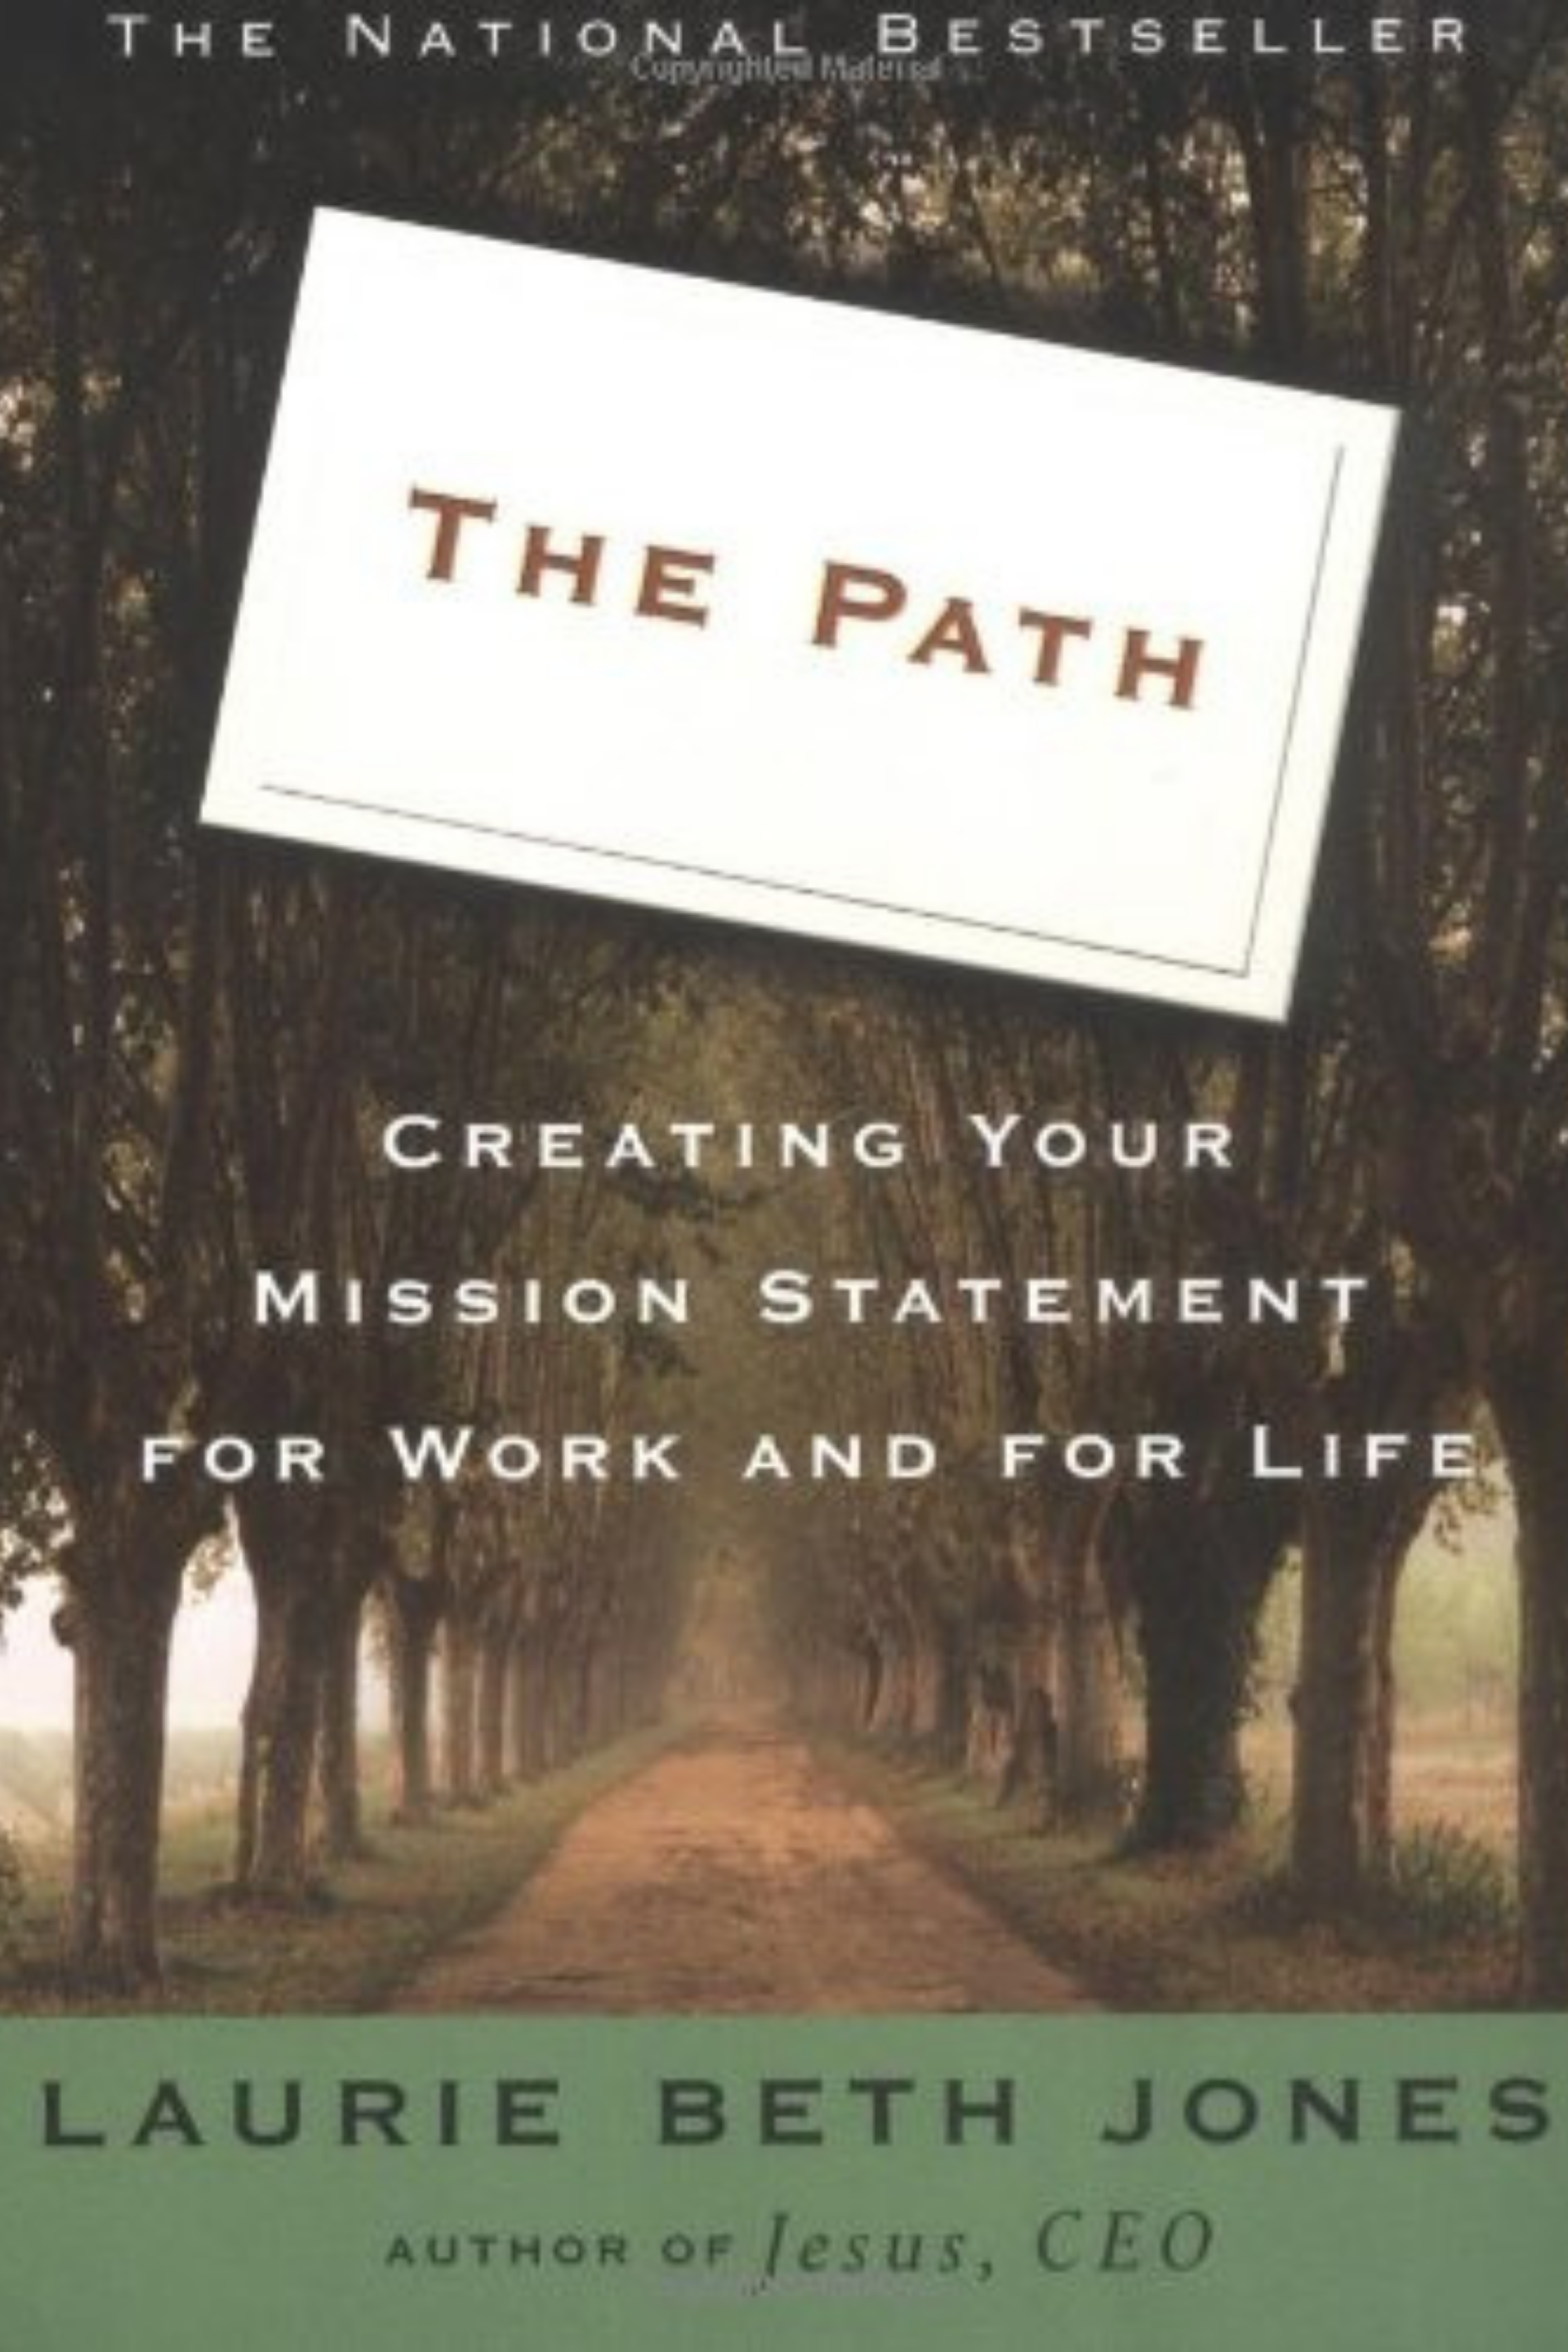 The Path Laurie Beth Jones Courtney Elmer.png